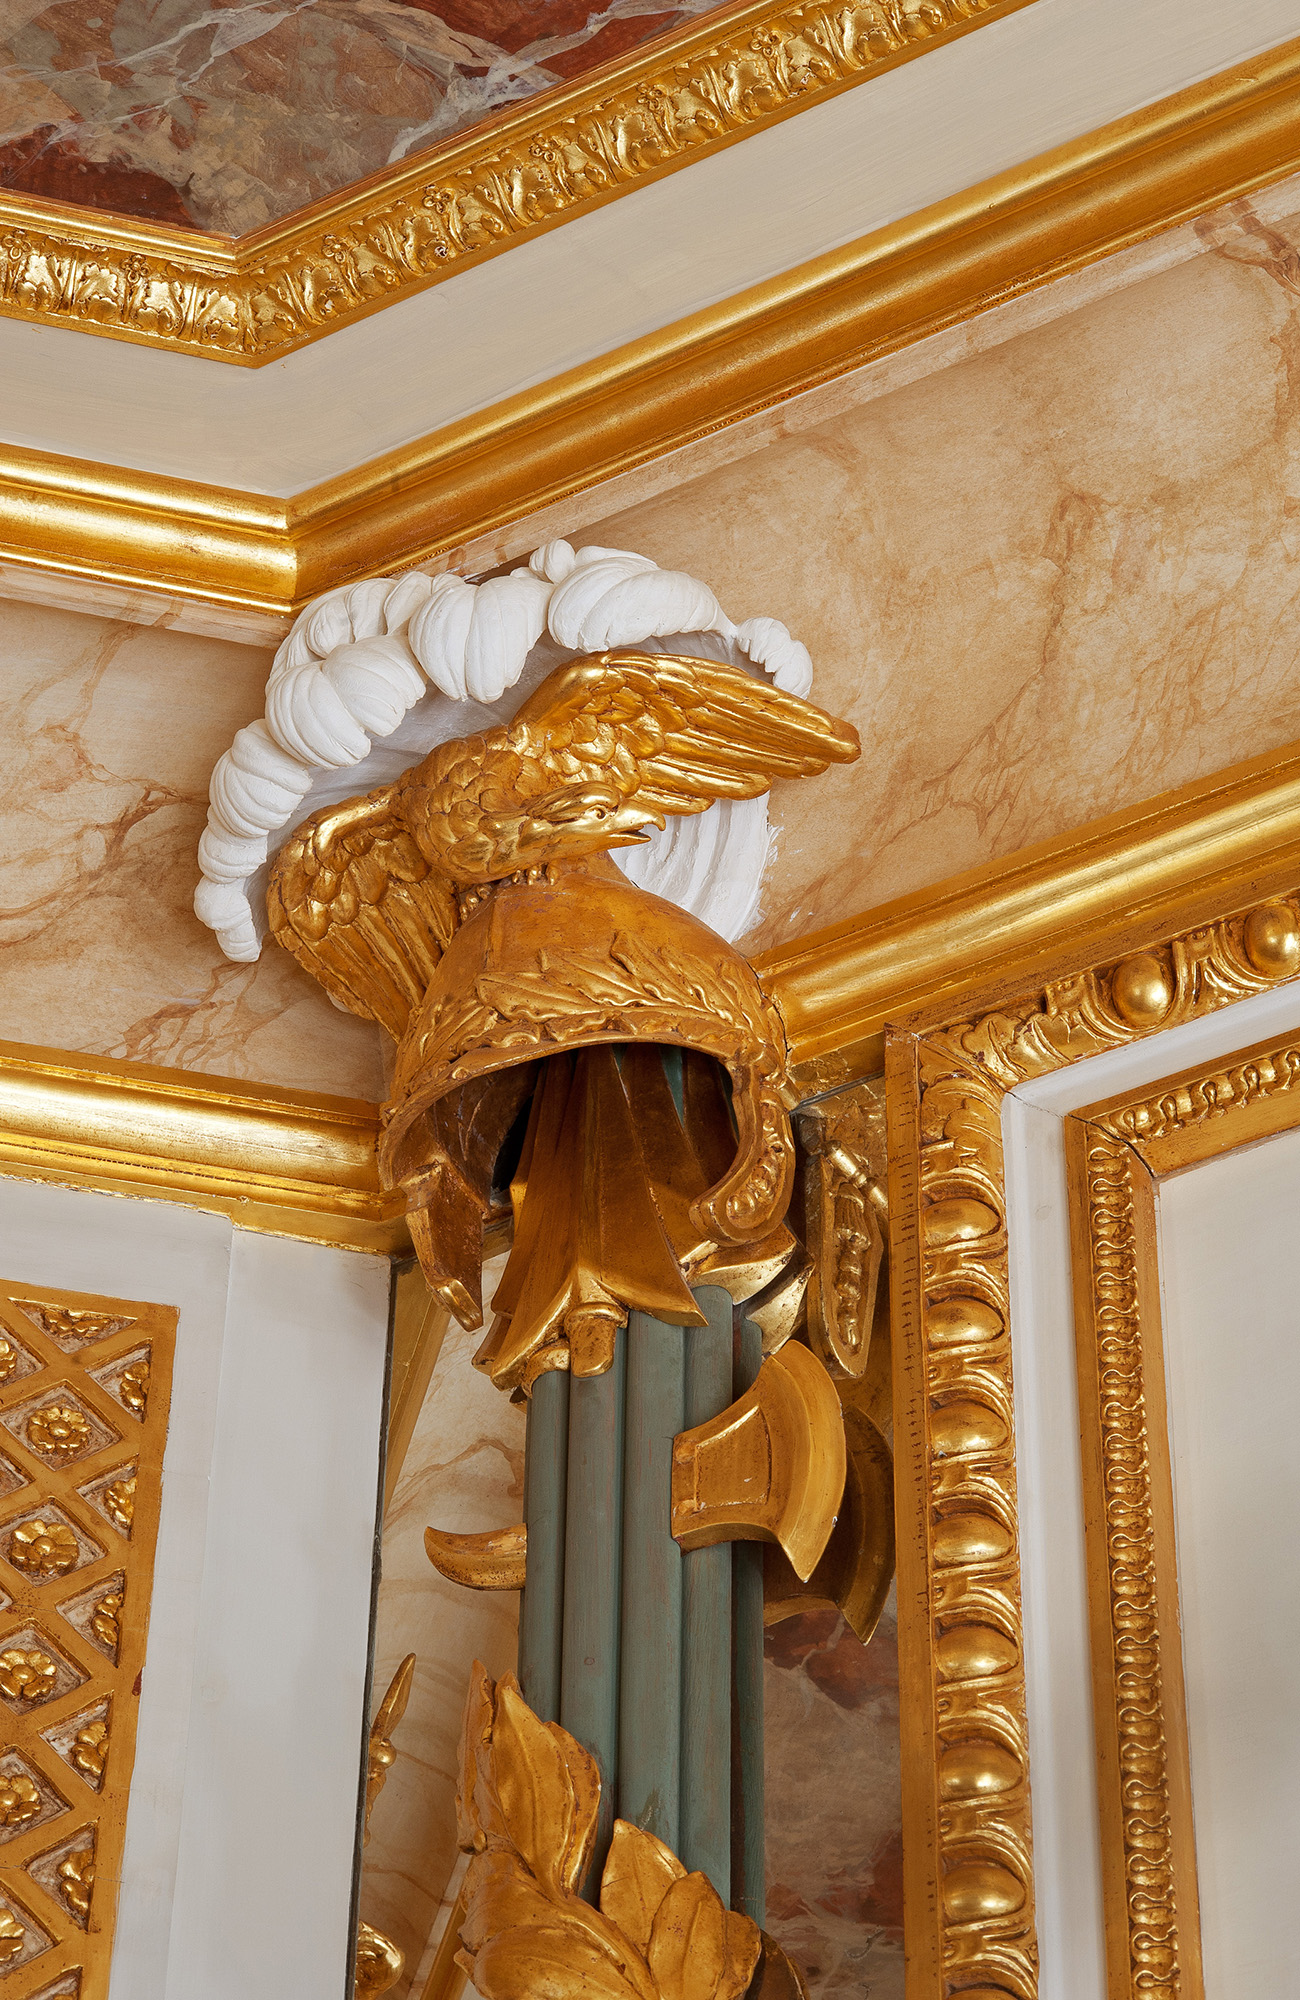 Helmet-and-arms capital from Ledoux boiserie, cornice and ceiling paintwork in white, gold, and faux russet marble